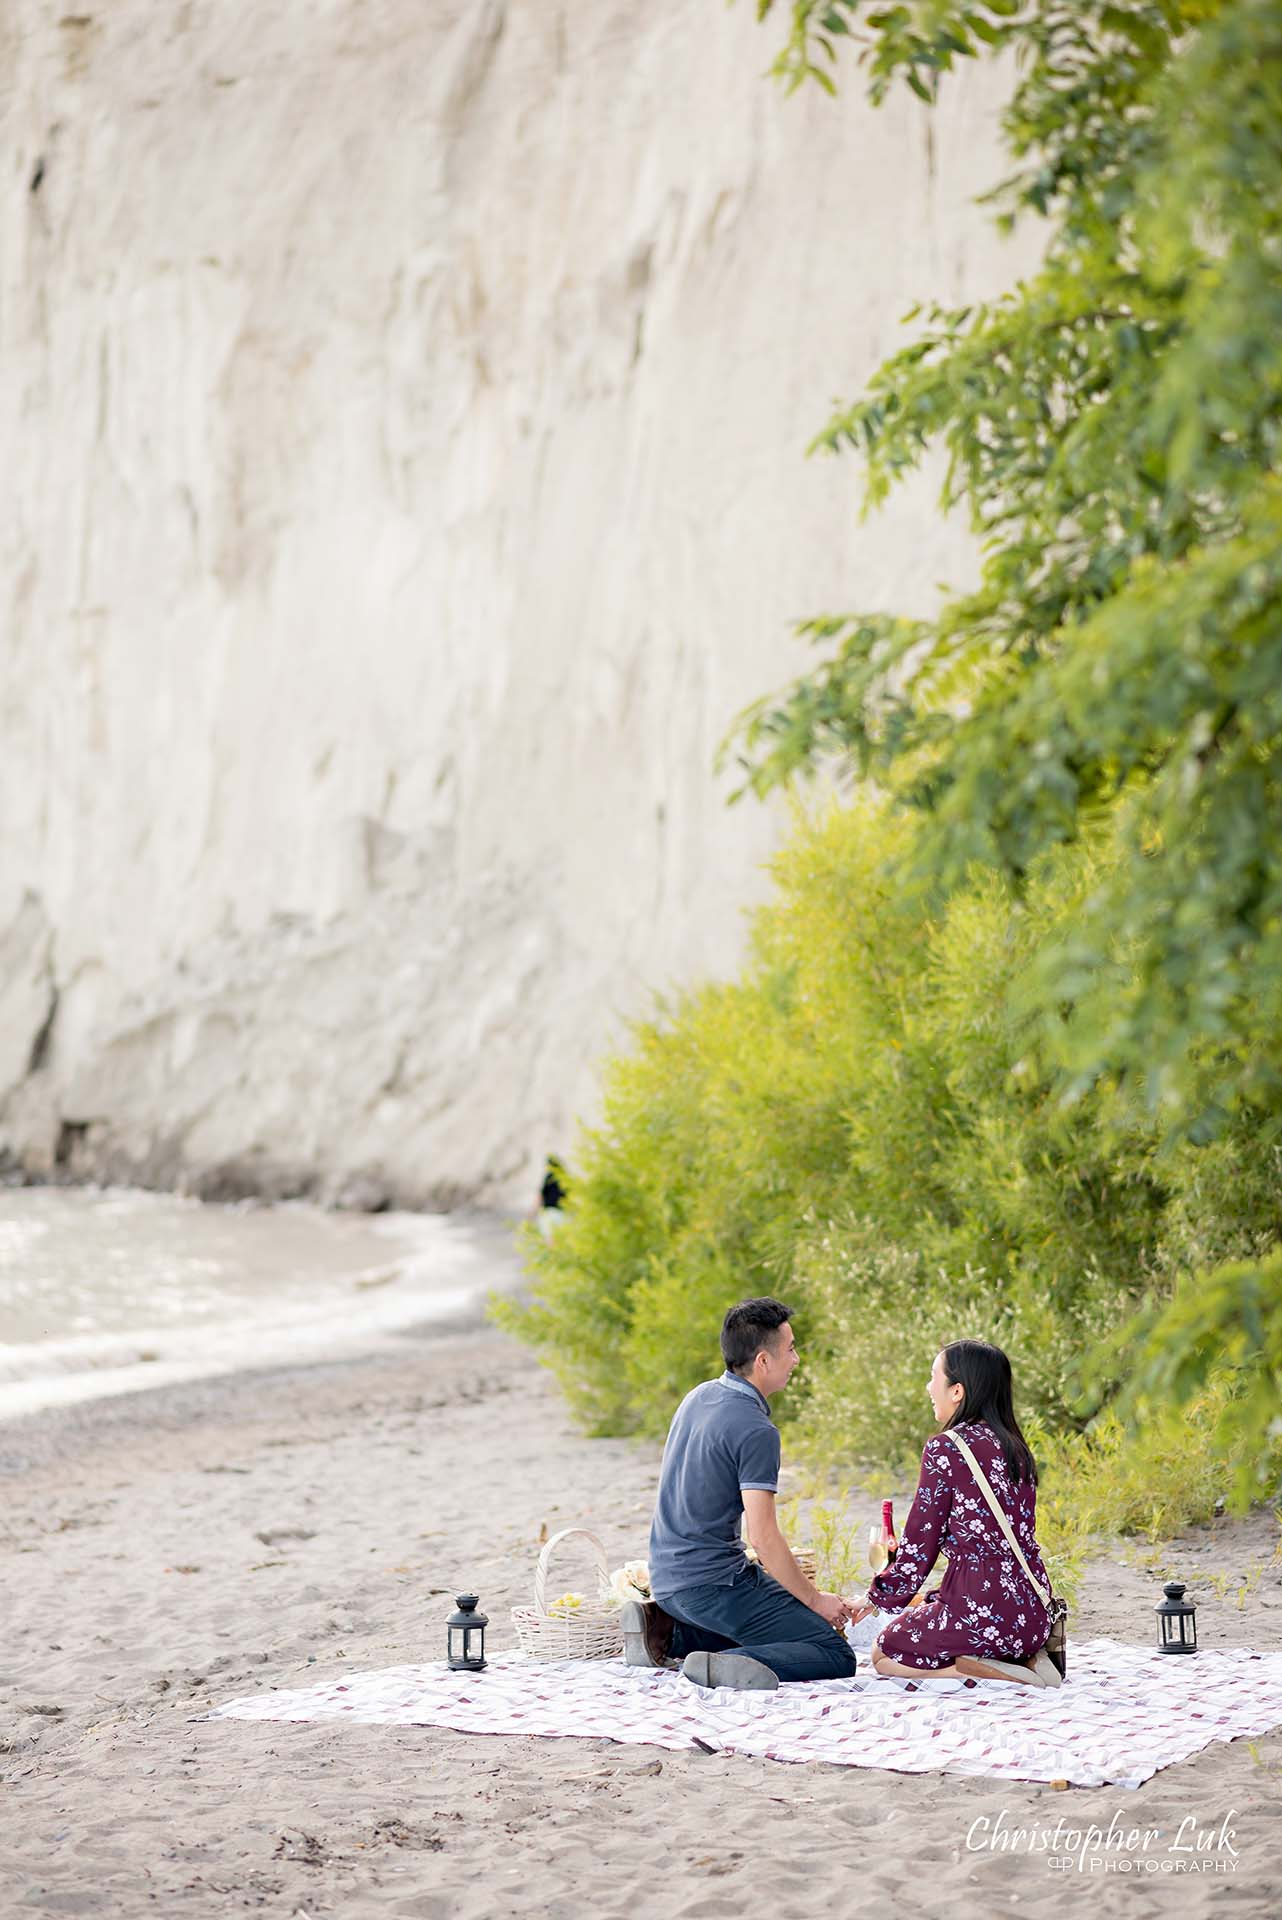 Christopher Luk Toronto Photographer Scarborough Bluffs Beach Park Sunset Surprise Wedding Marriage Engagement Proposal Candid Natural Photojournalistic Bride Groom Picnic Blanket Basket Arrival